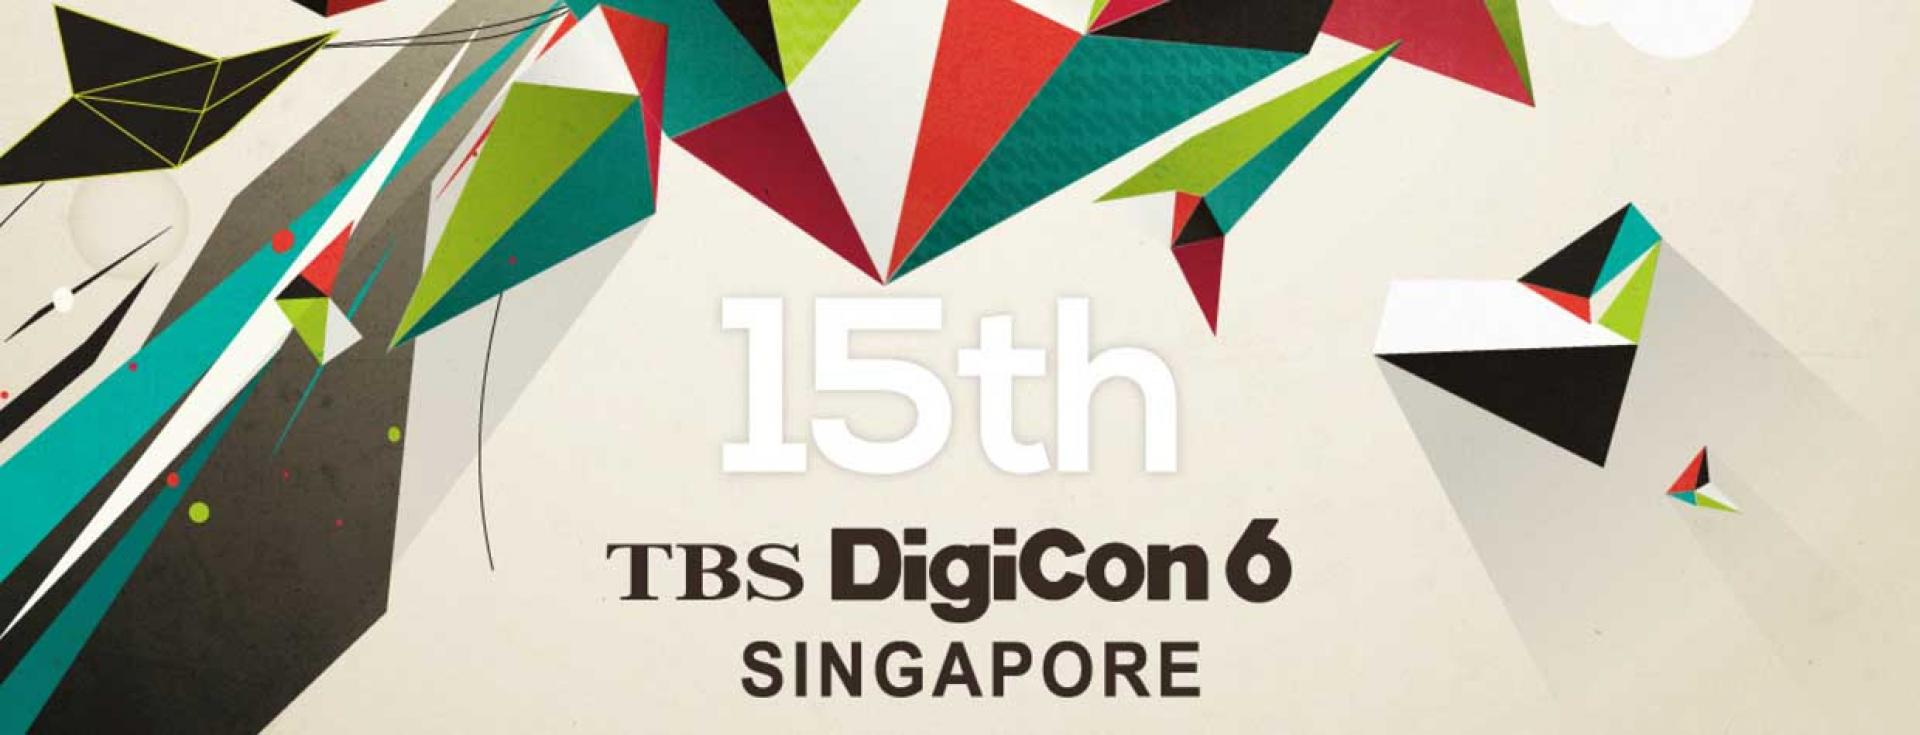 TBS DigiCon6